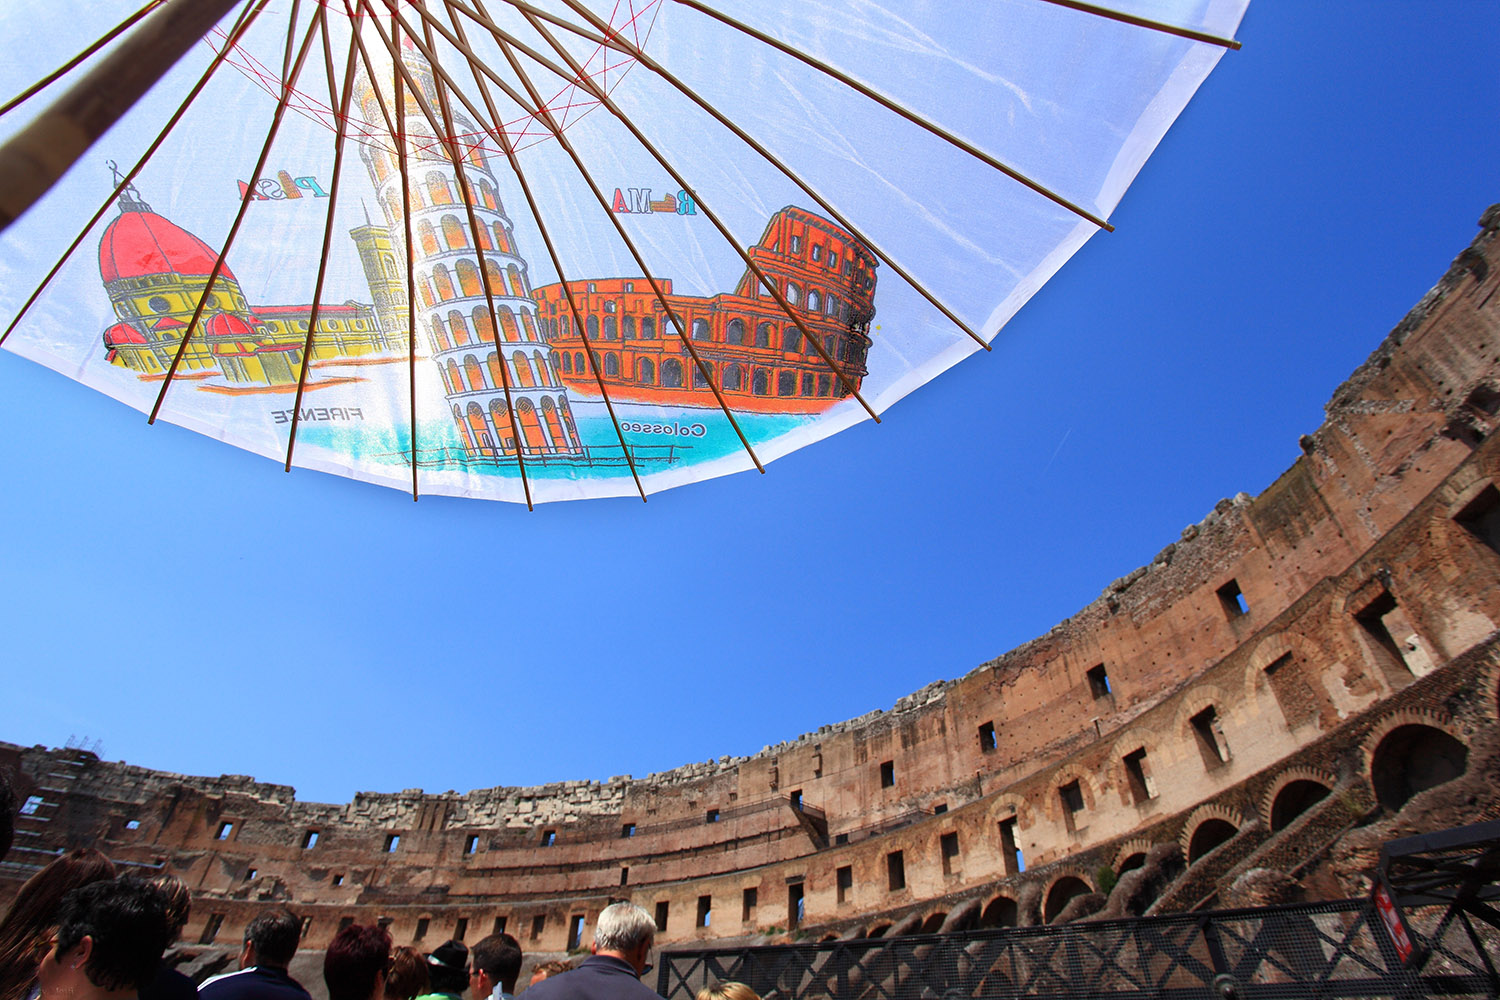 Italy / Rome / The Colosseum